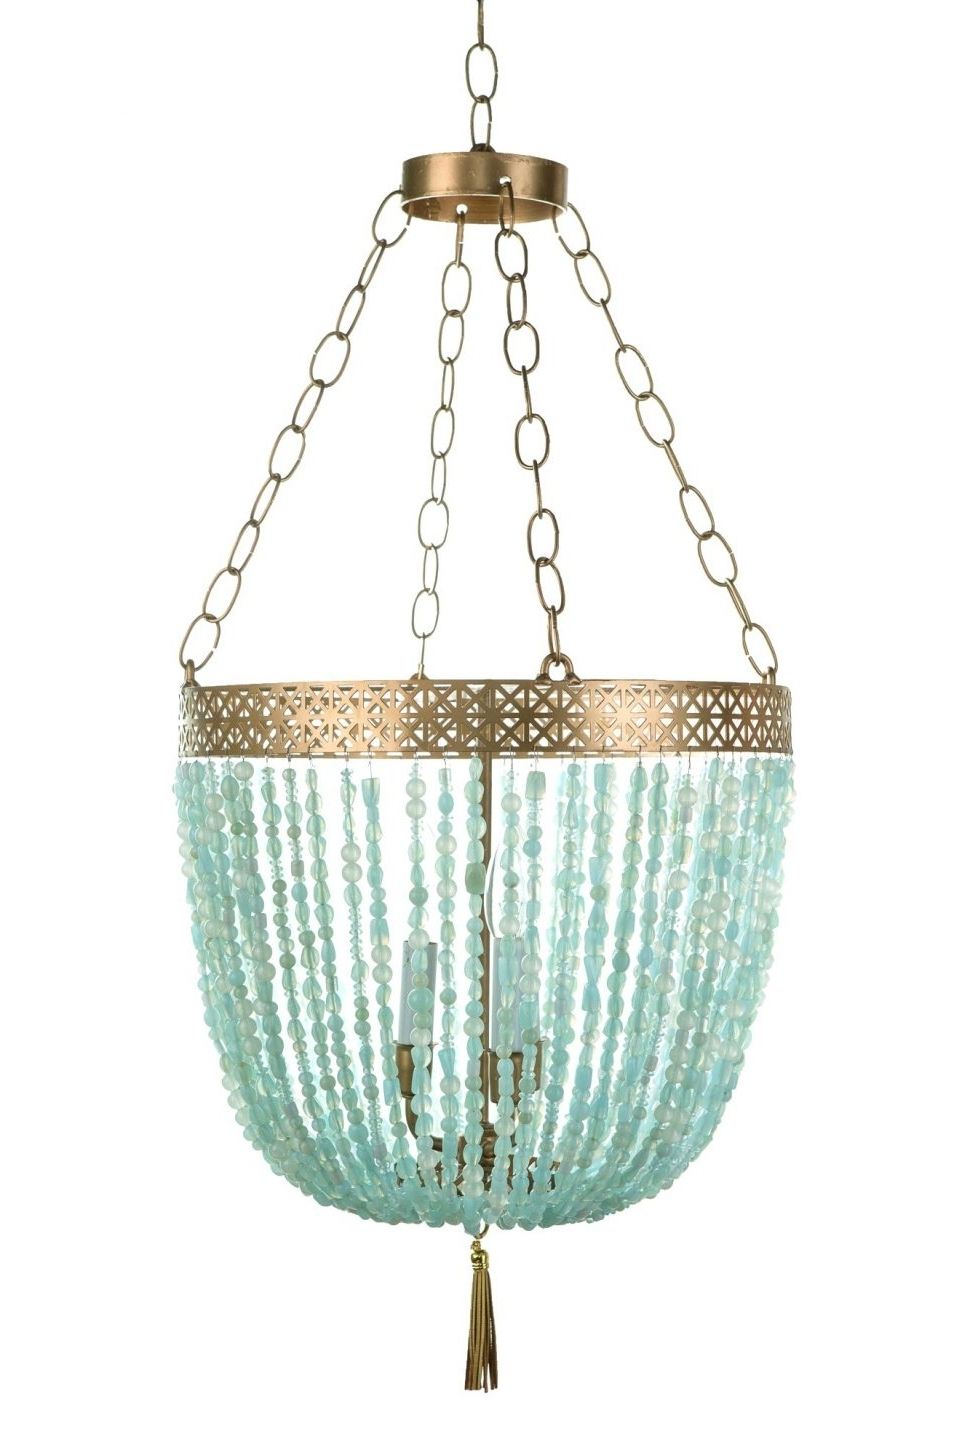 Turquoise Blue Beaded Chandeliers Inside Favorite Chandeliers Design : Magnificent Turquoise Blue Chandelier Light (View 14 of 20)